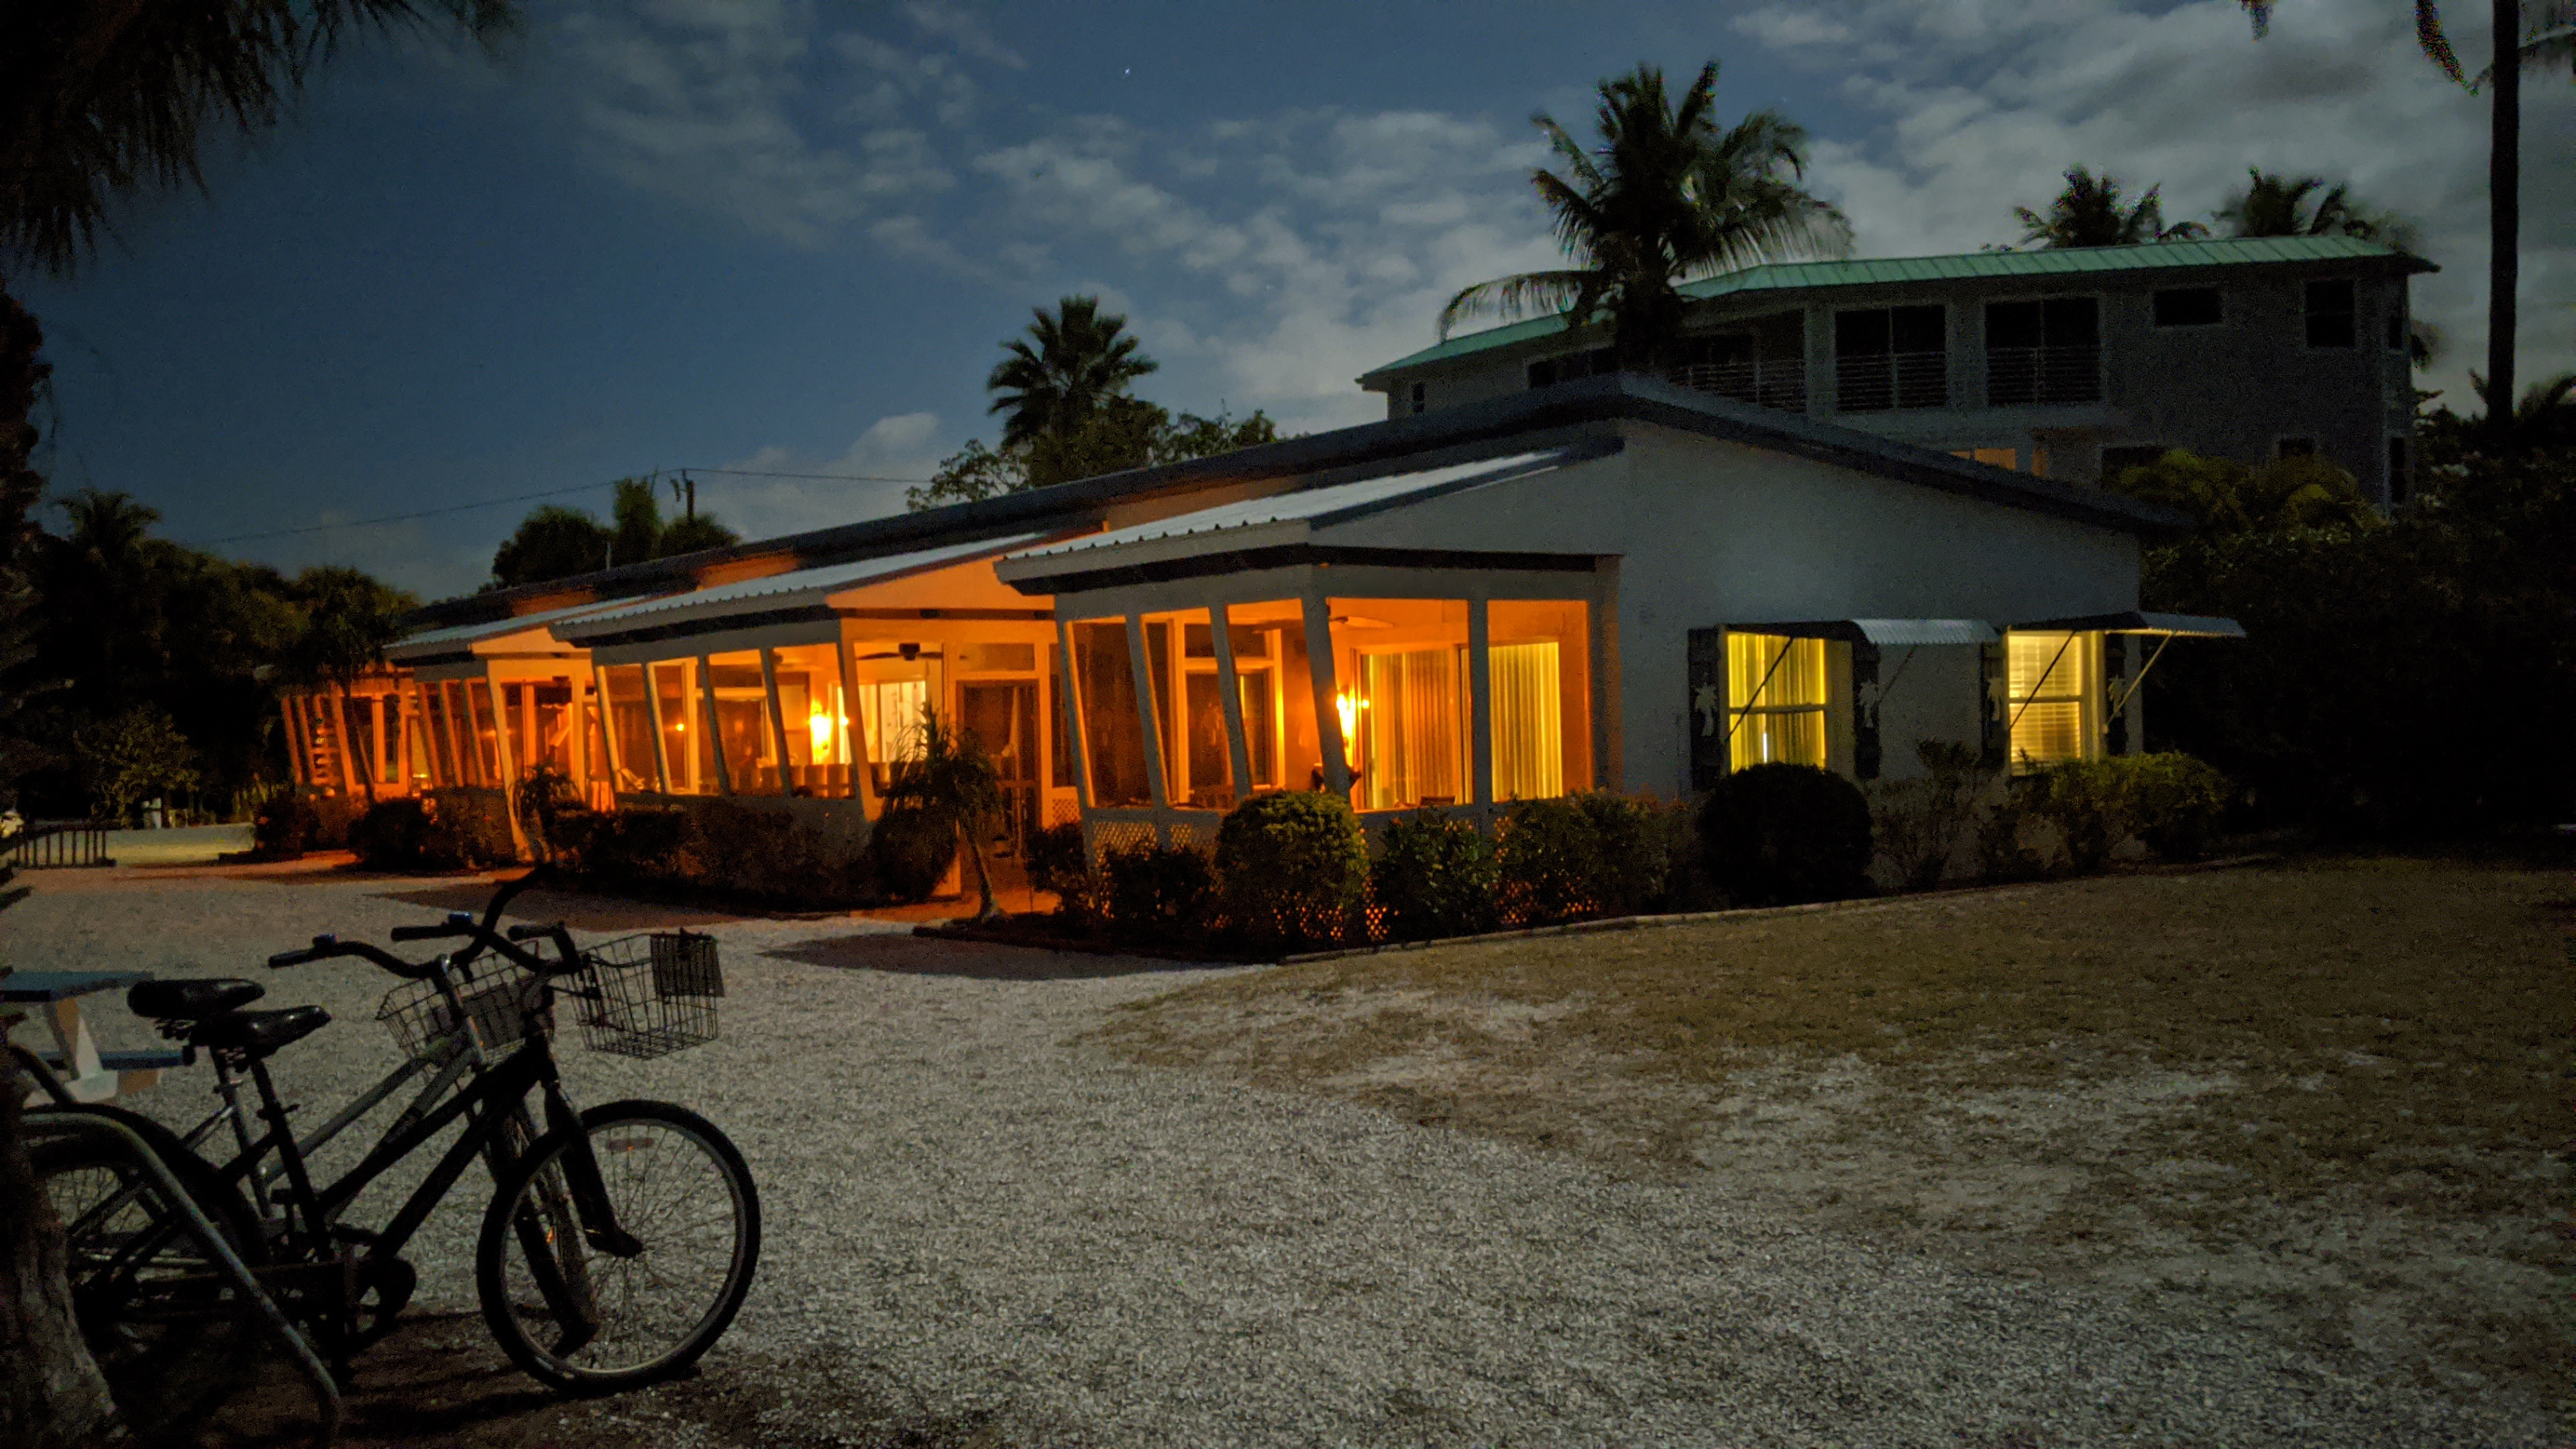 Classic cottages at Tropical Winds Beachfront Motel were illuminated by a full moon on Sanibel Island, Fla.